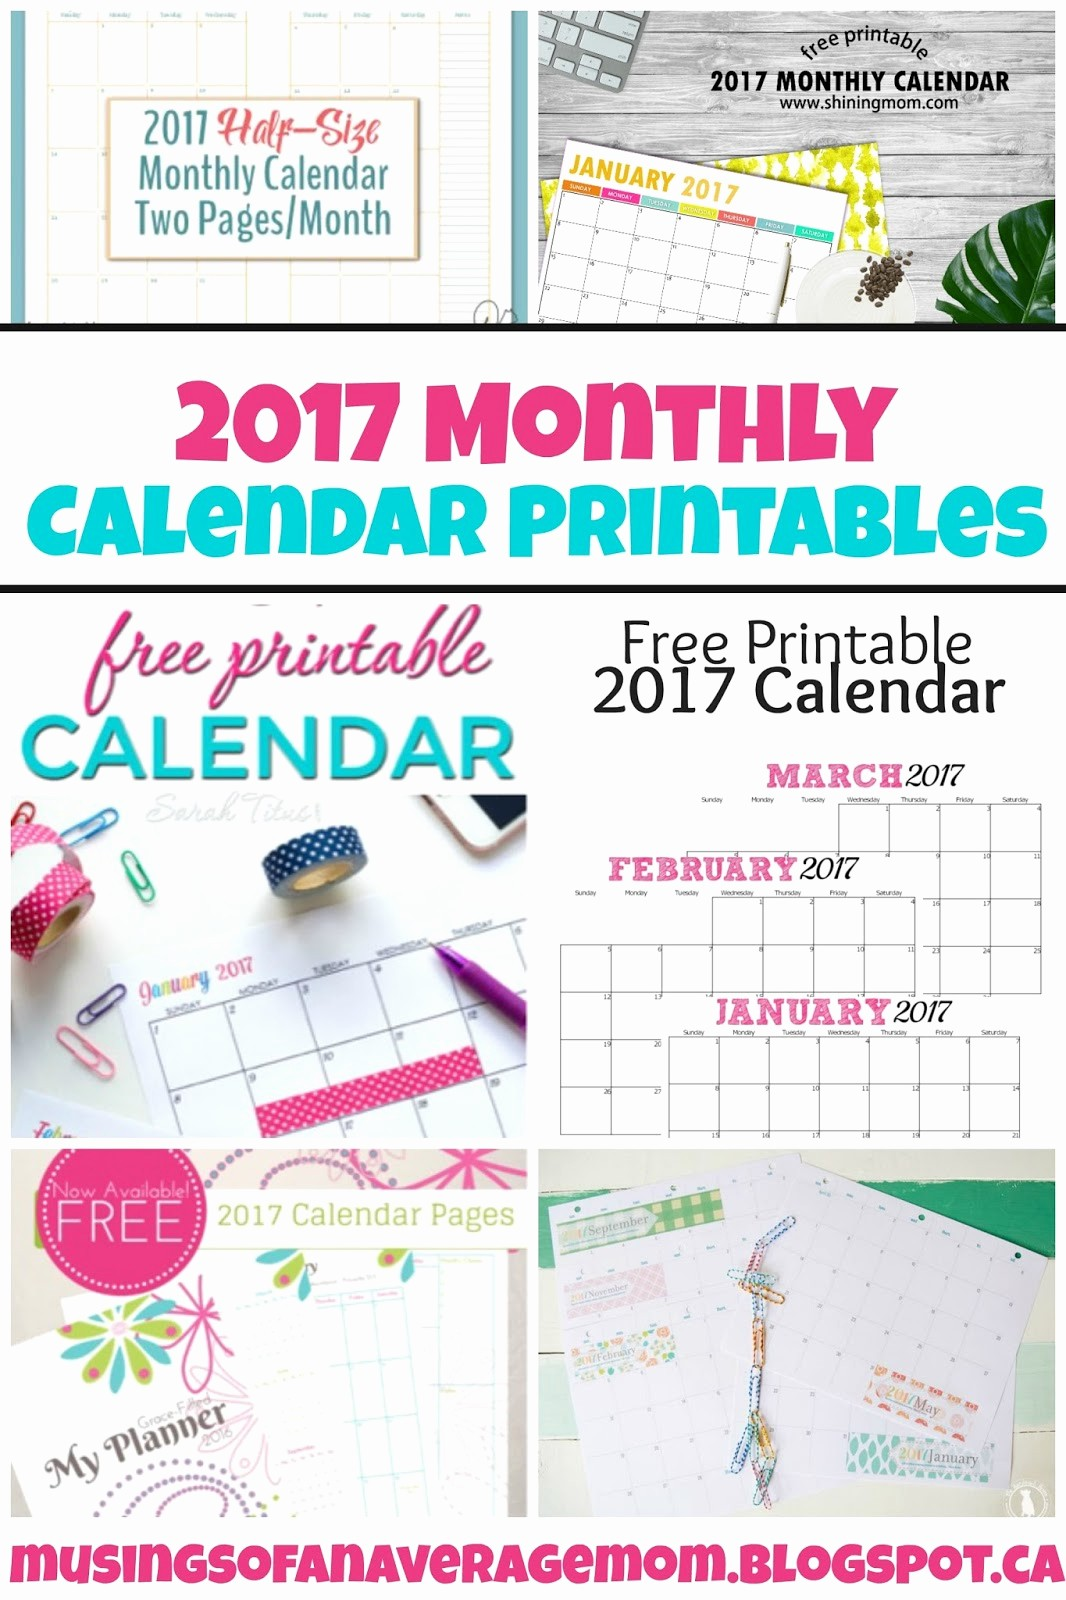 Free Printable Weekly Calendars 2017 Elegant Musings Of An Average Mom 2017 Monthly Calendars